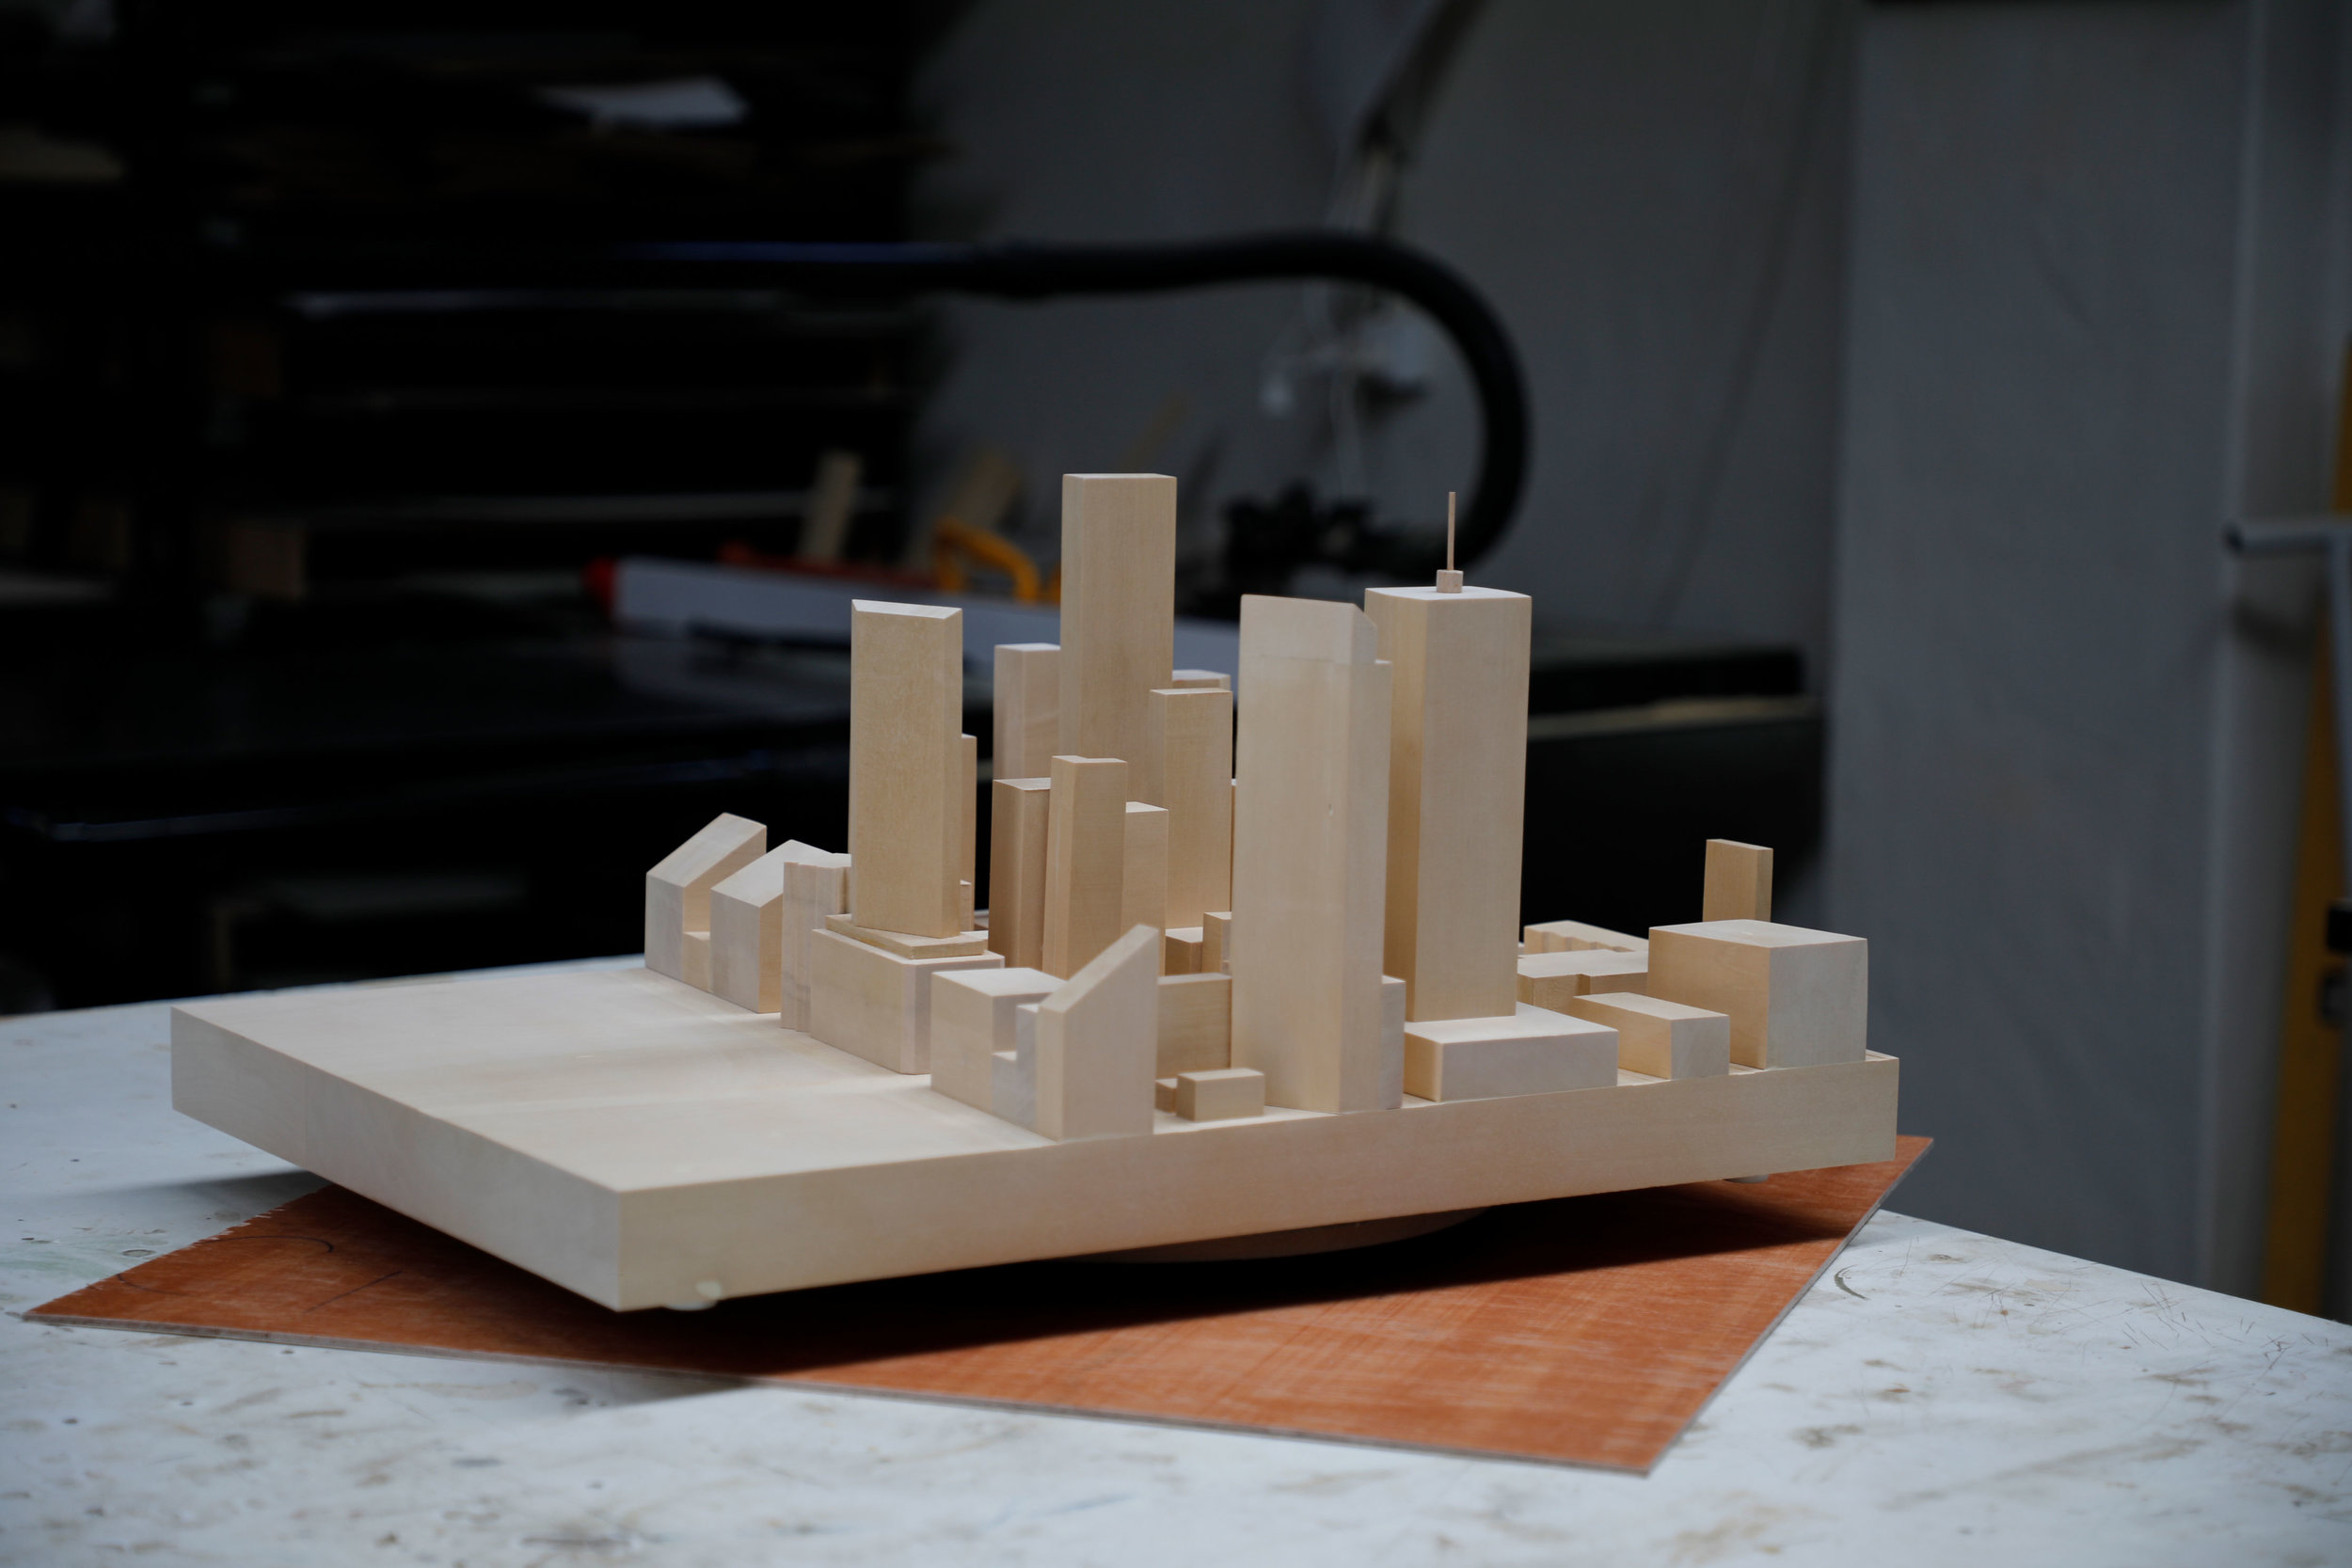 architecture_model_cnc_laser_cutting_fabrication_scale_model_solid_timber_Site_Sydney_wood_1.jpg